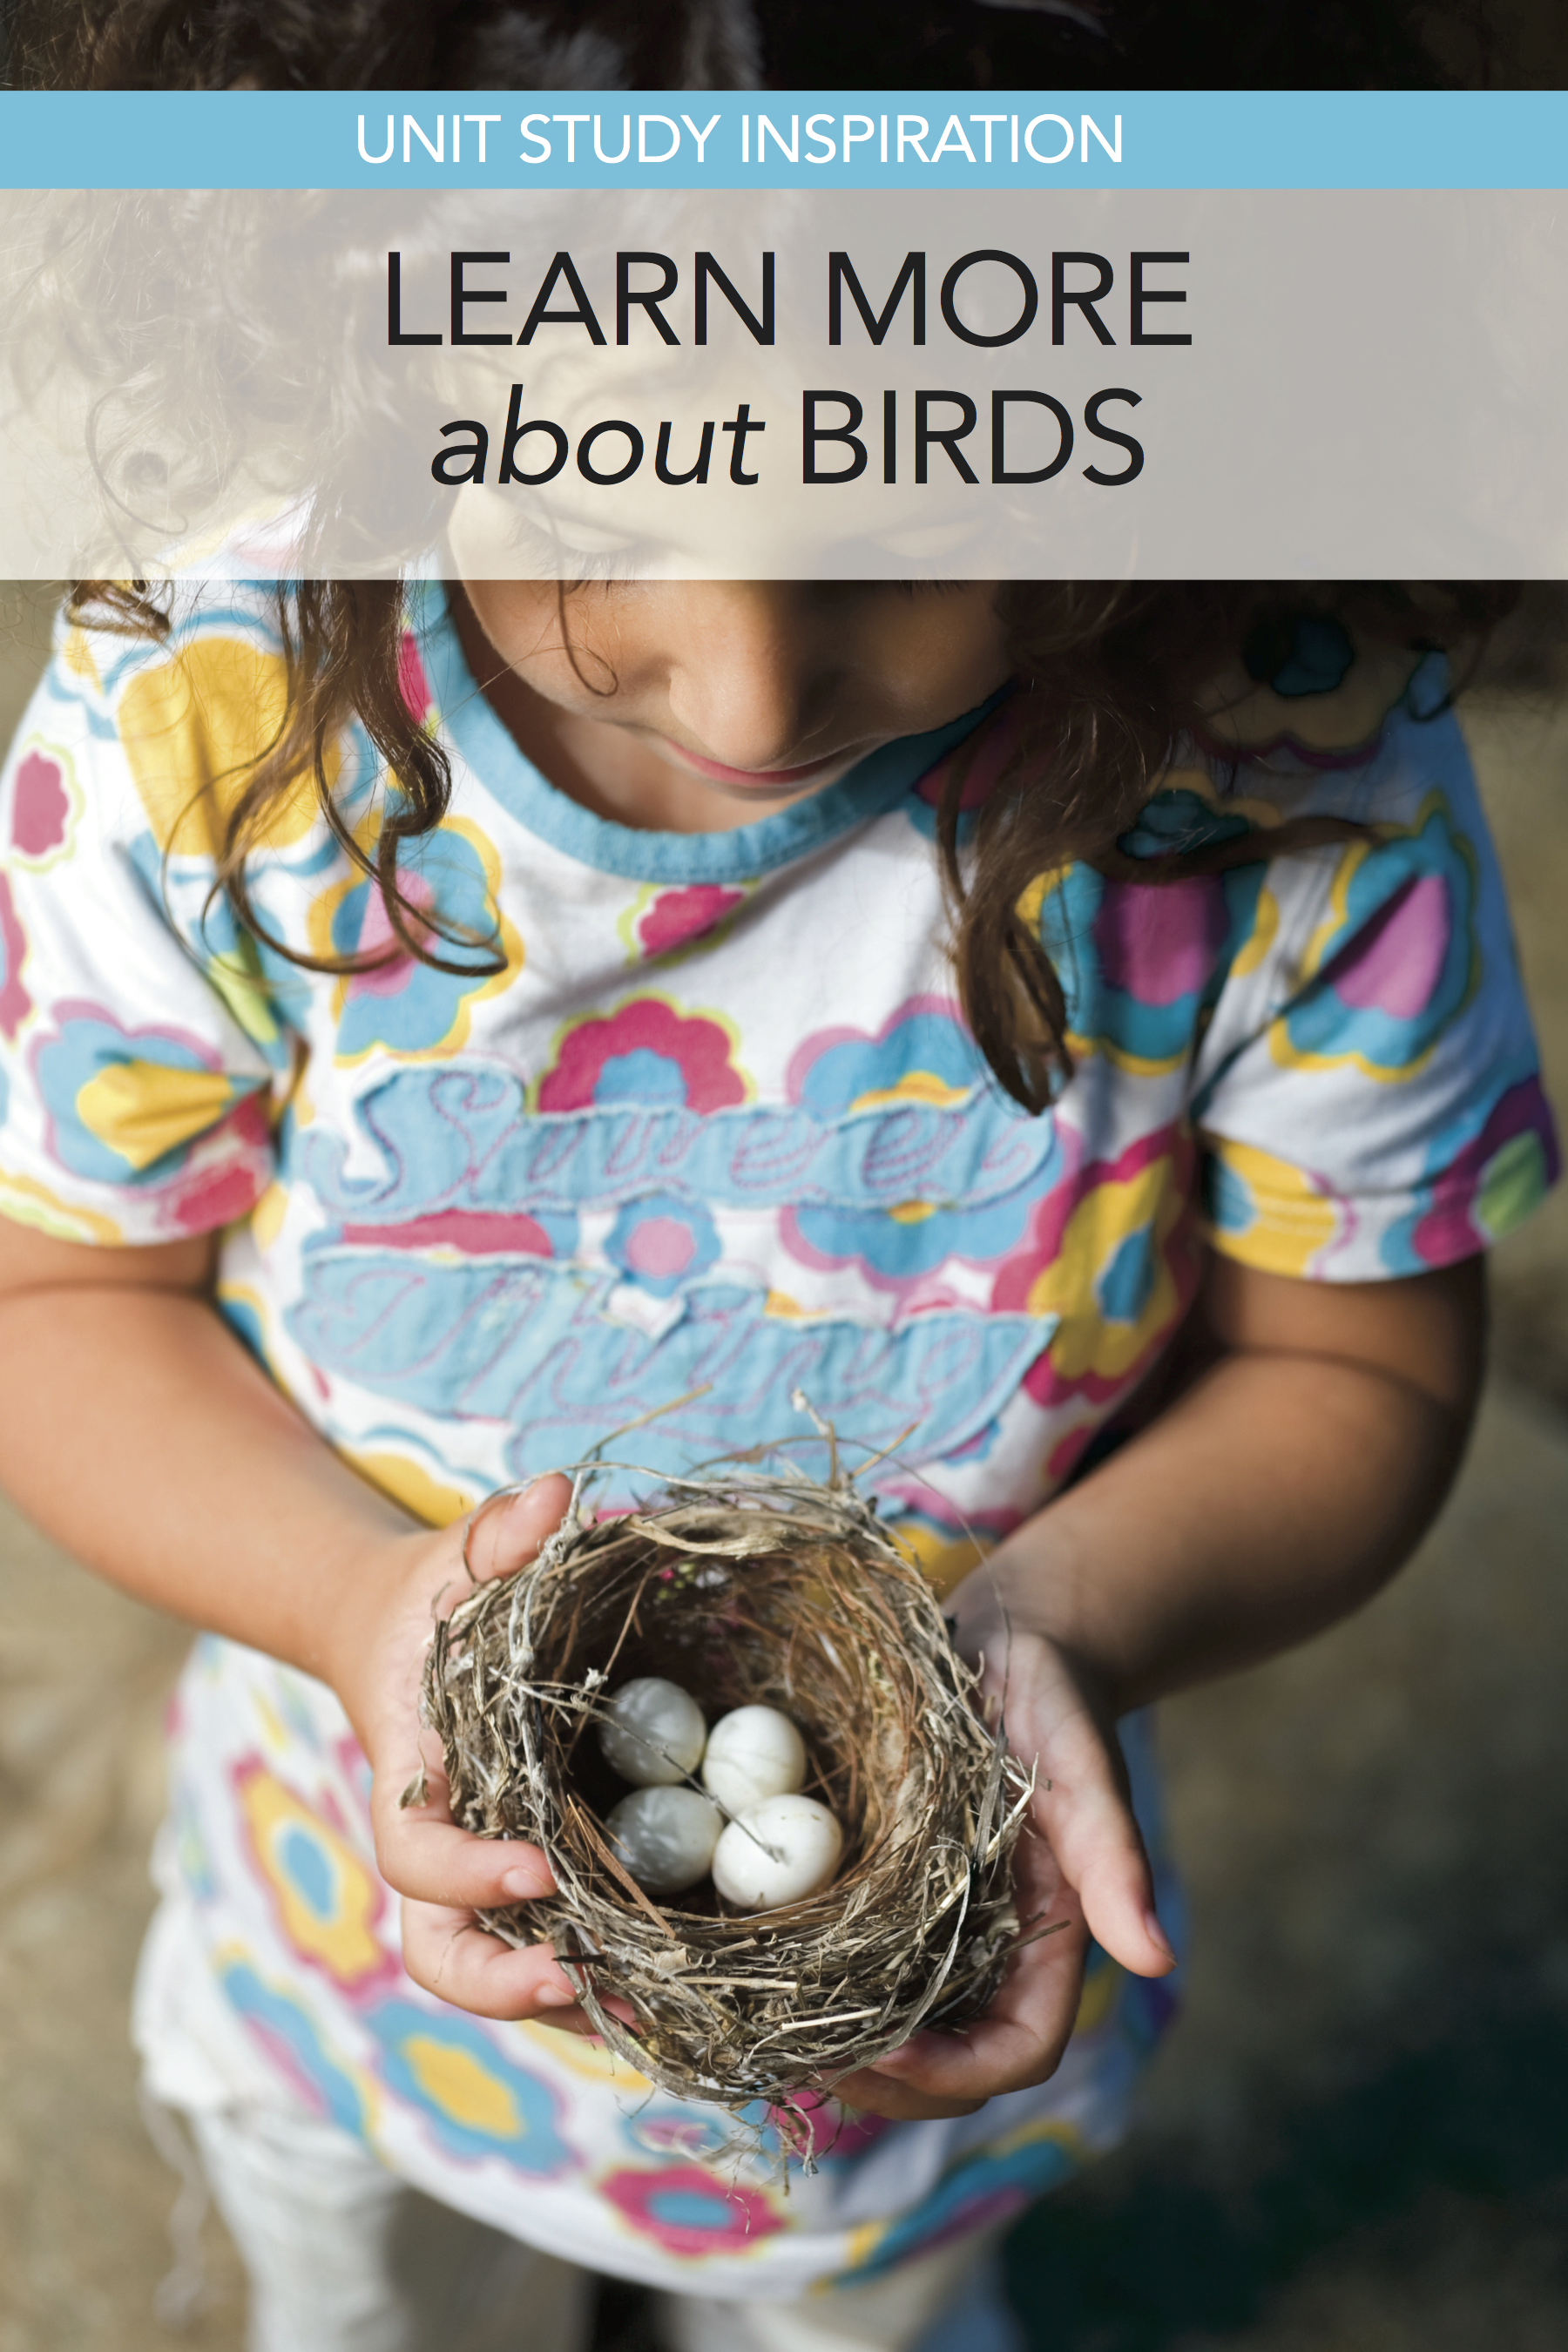 Love this roundup of books and resources for the Great Backyard Bird Hunt (in Feb.). This could be a stand-alone homeschool unit study on birds, too.